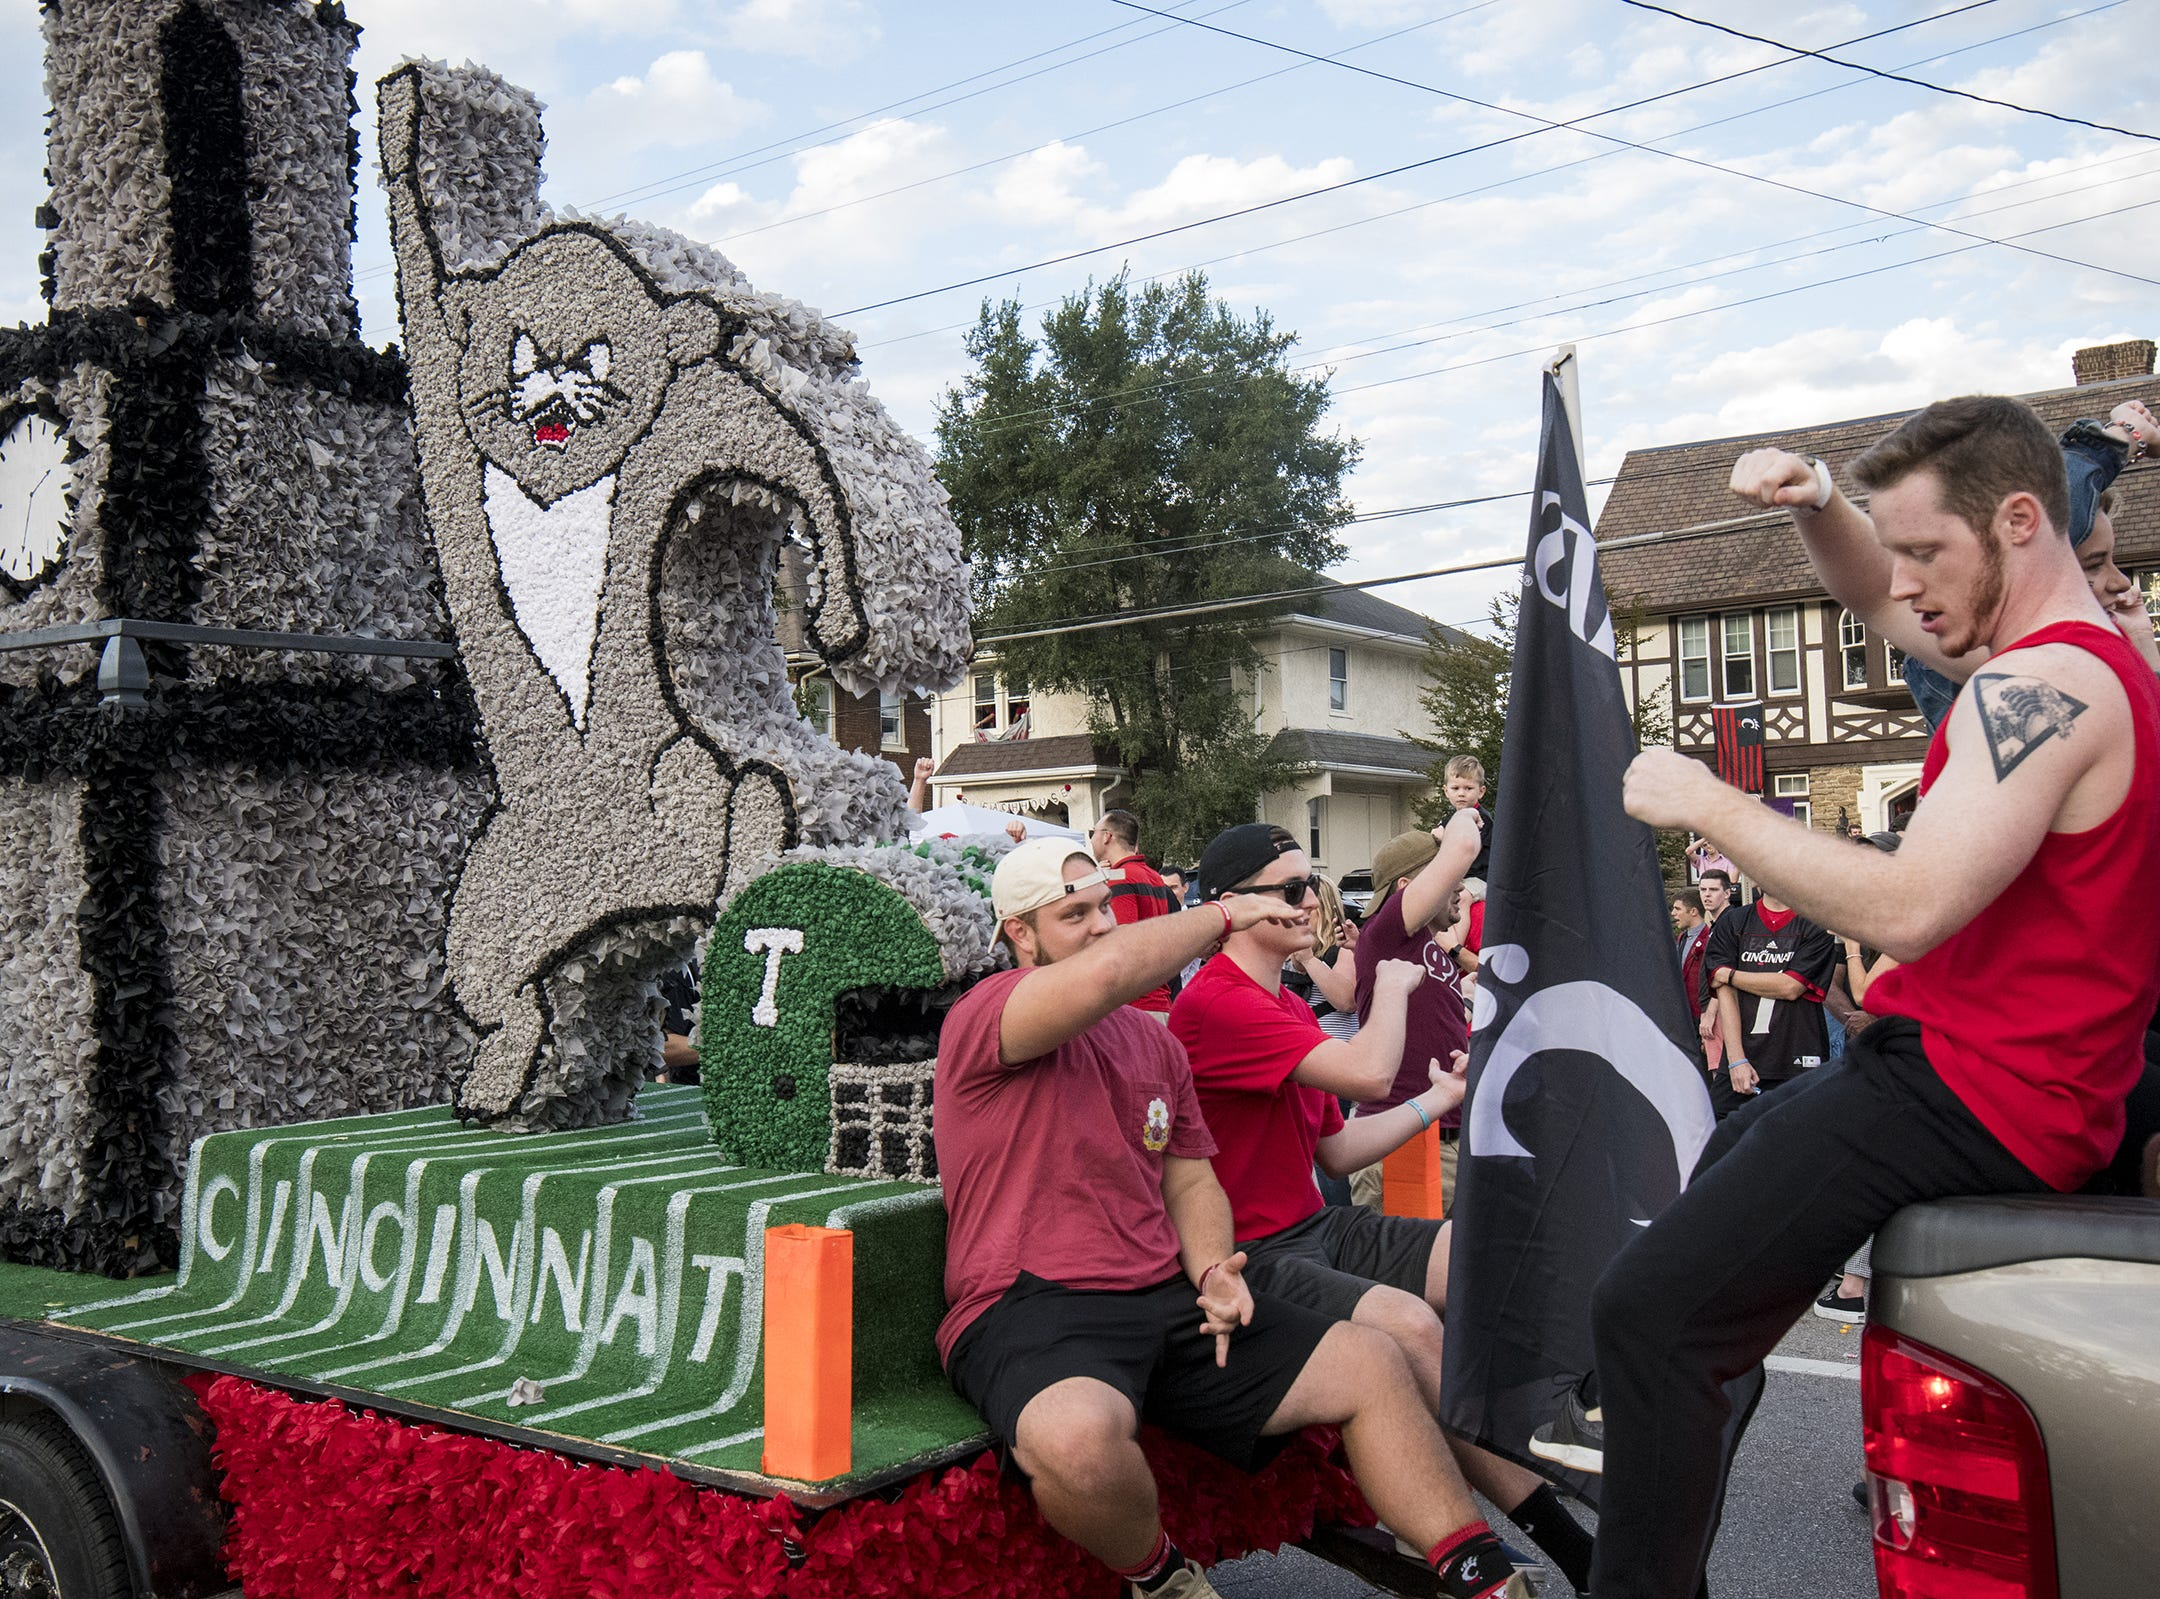 Students lead the crowd in the Down the Drive chant during the annual University of Cincinnati Homecoming parade.